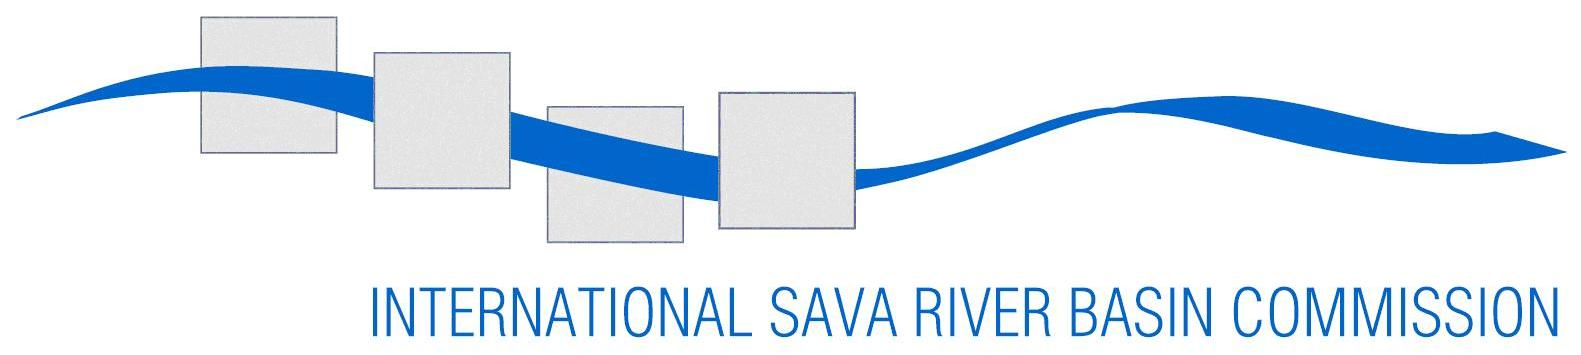 logo for International Sava River Basin Commission